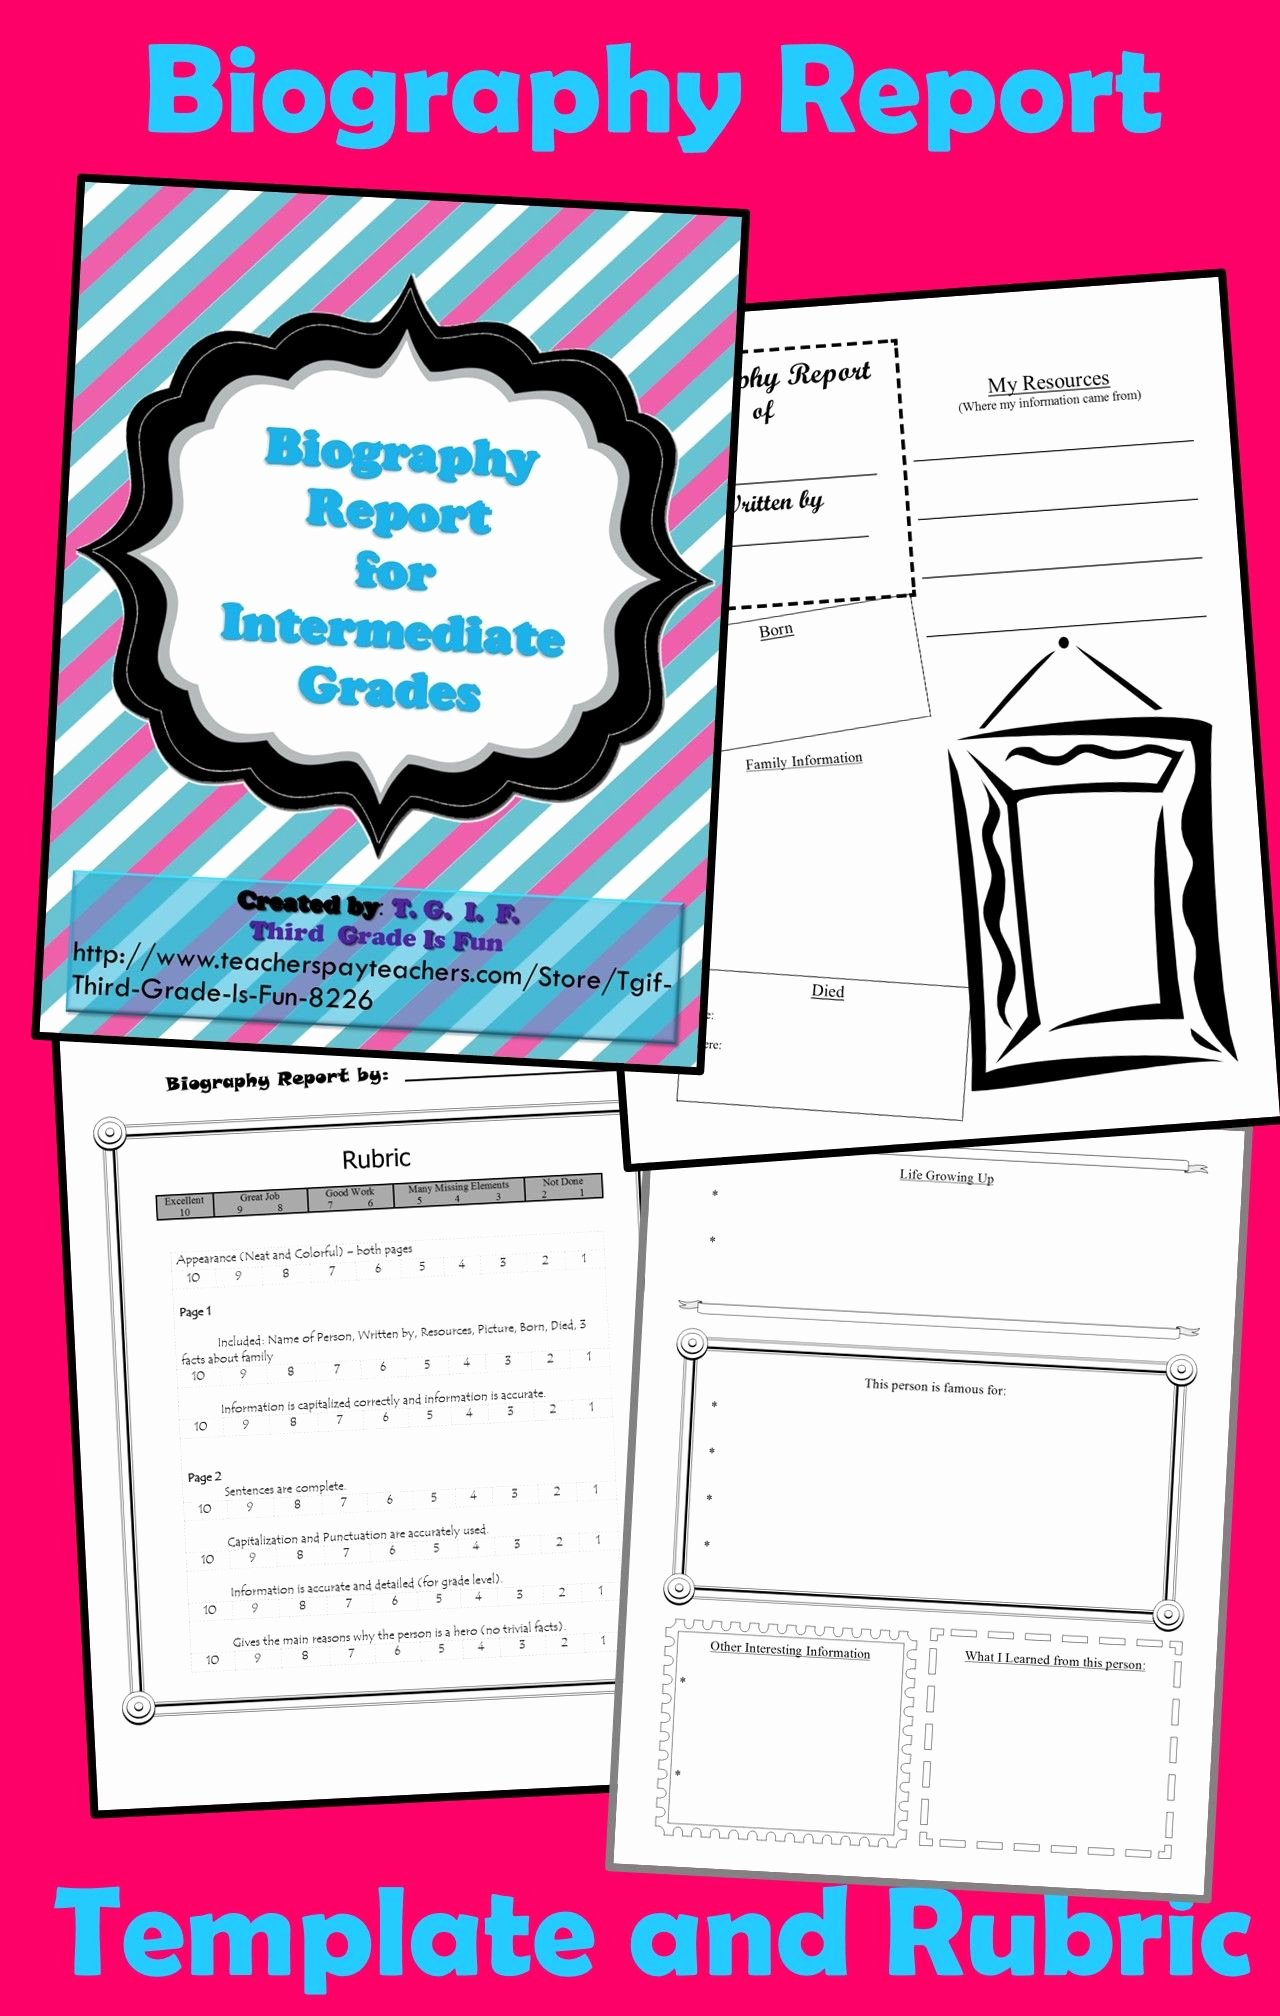 Biography Report Outline New Biography Report Template for Intermediate Grade